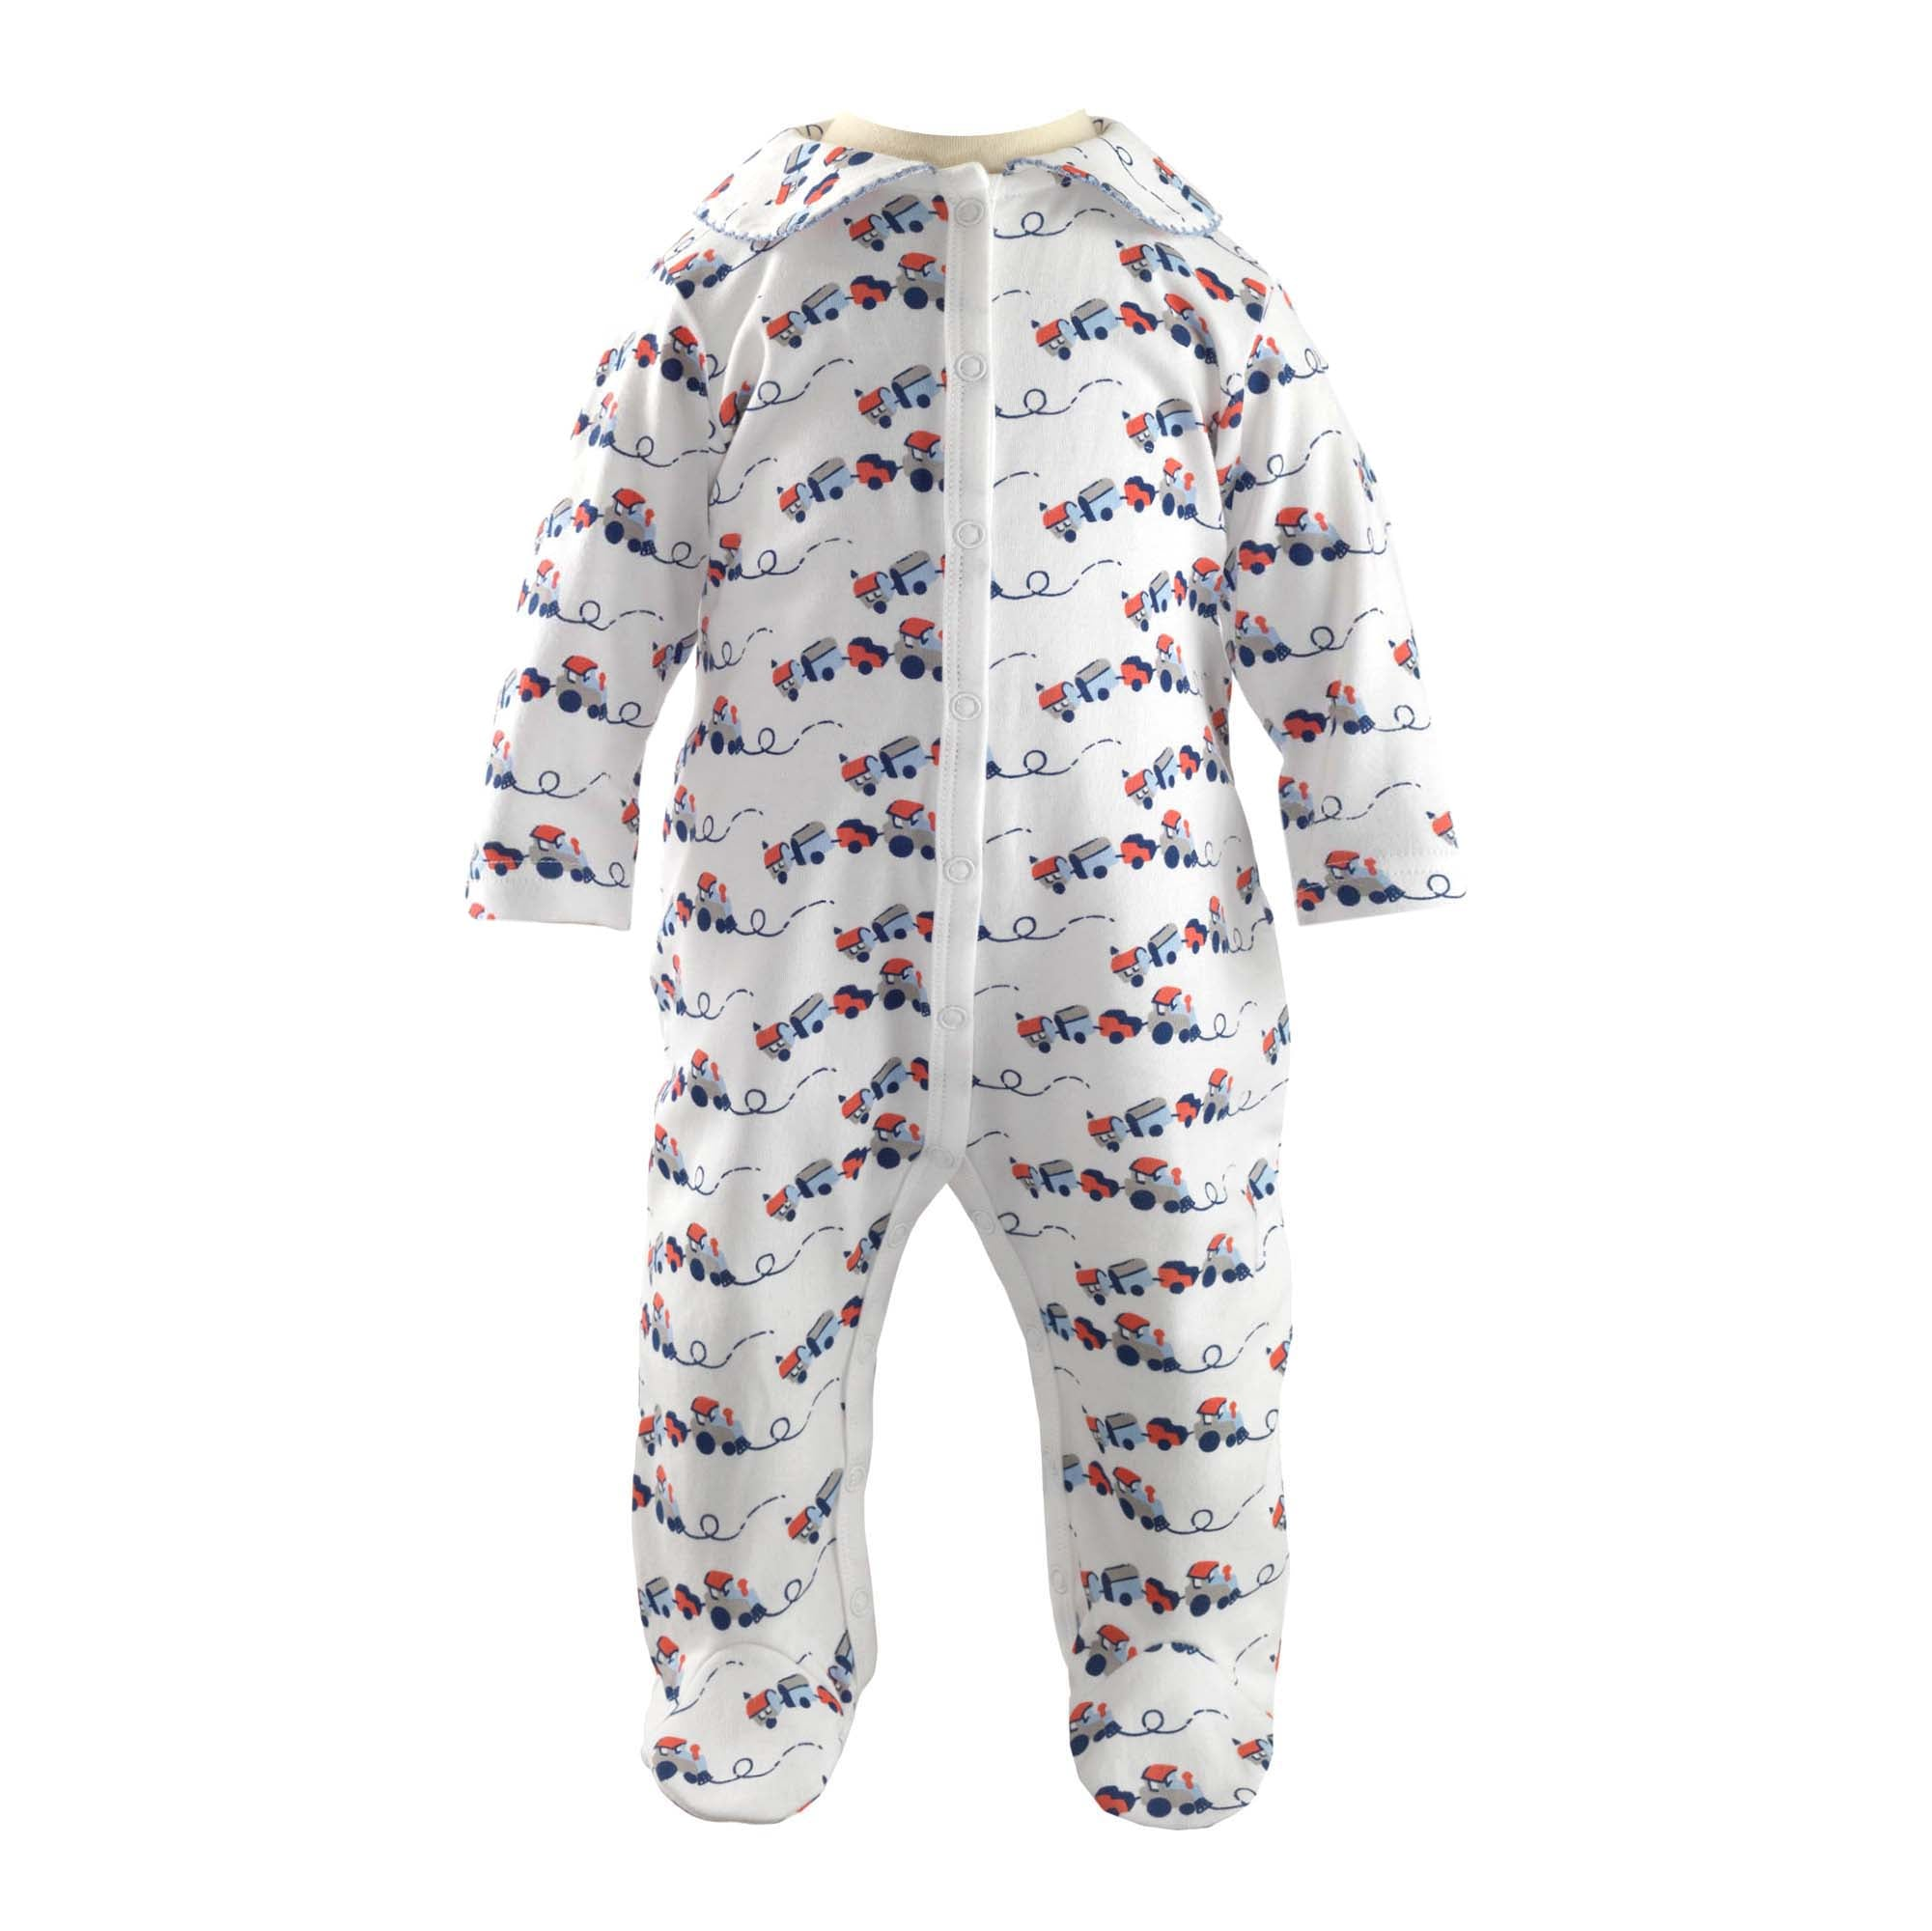 Rachel Riley Toy Trains Babygrow